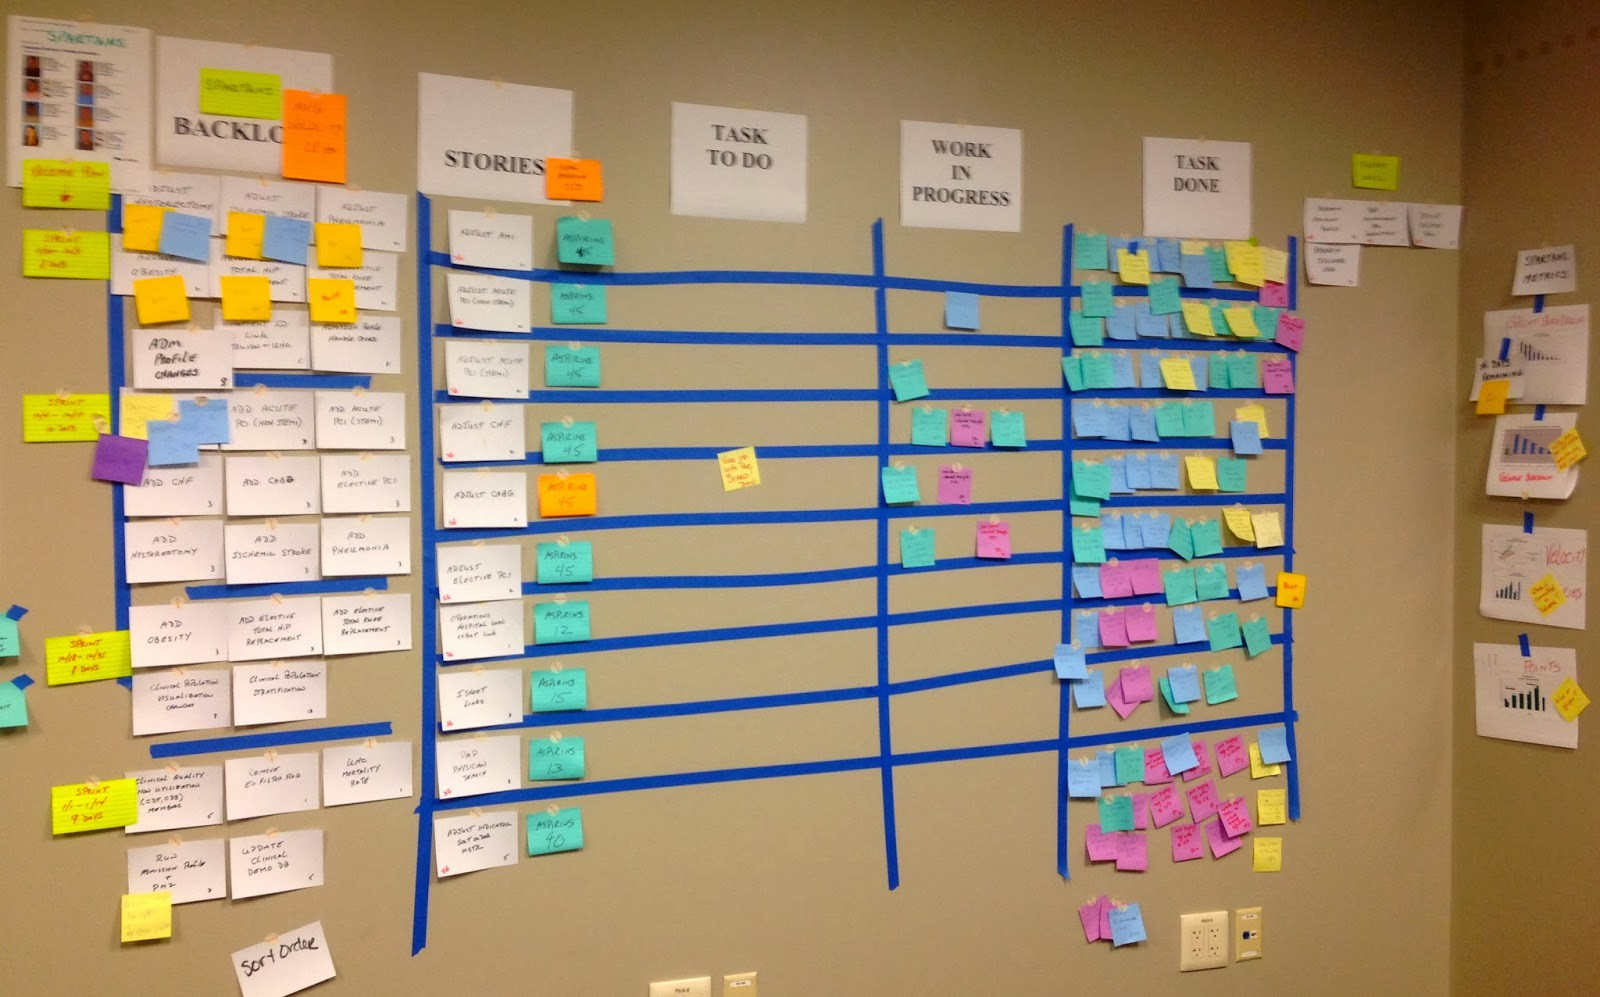 Scrum Task Board — Offline or Online? - Sasha Steskal - Medium